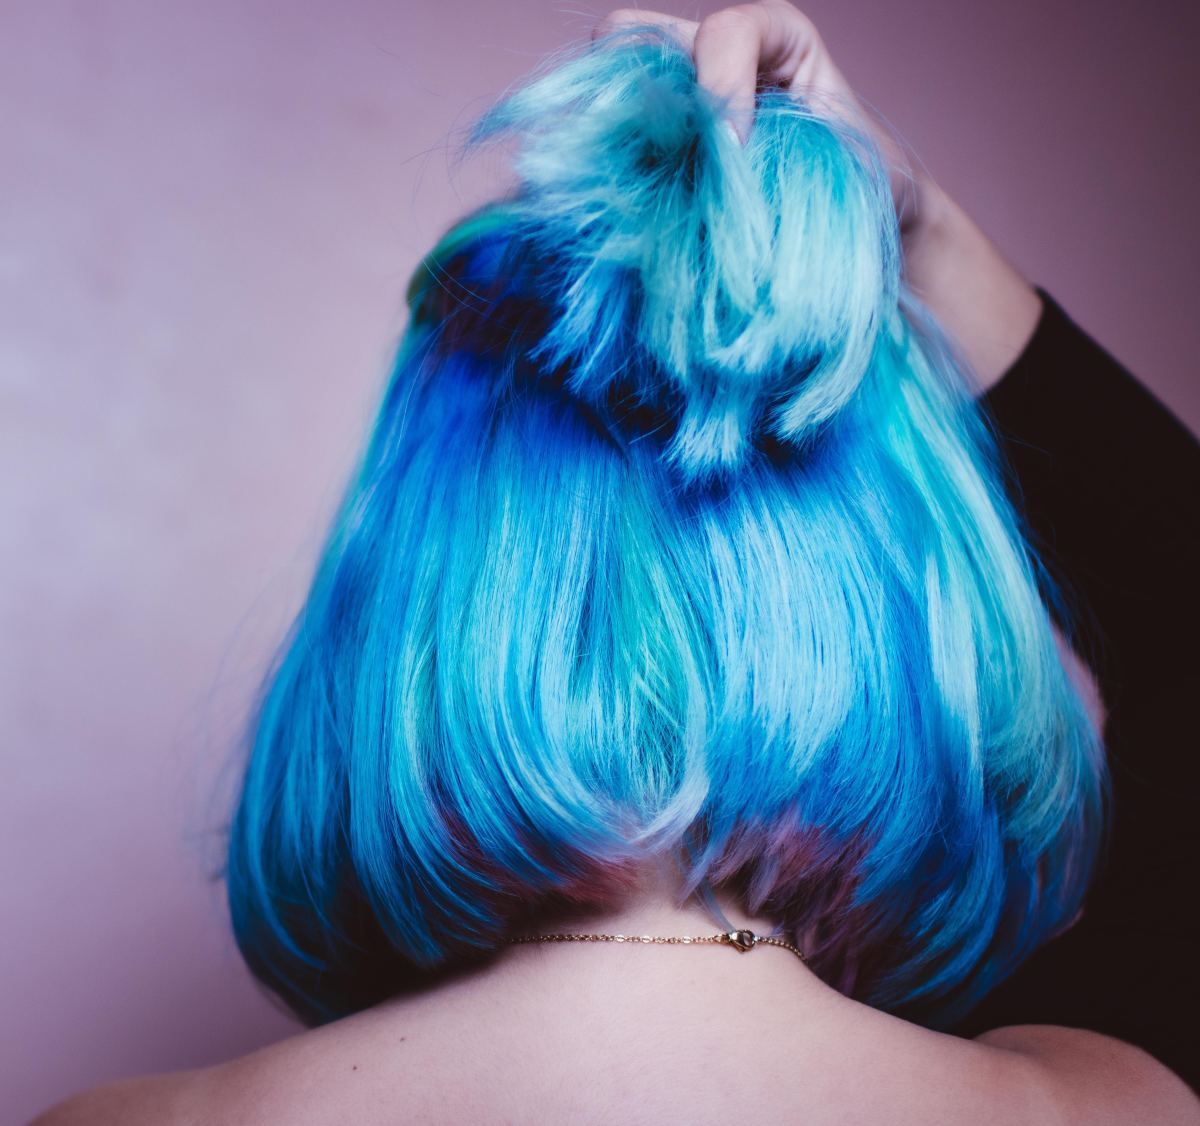 Thinking of dying your hair using the Kool-Aid method? The possibilities are endless. Consider dying your whole head, just the ends, or creating a rainbow effect.